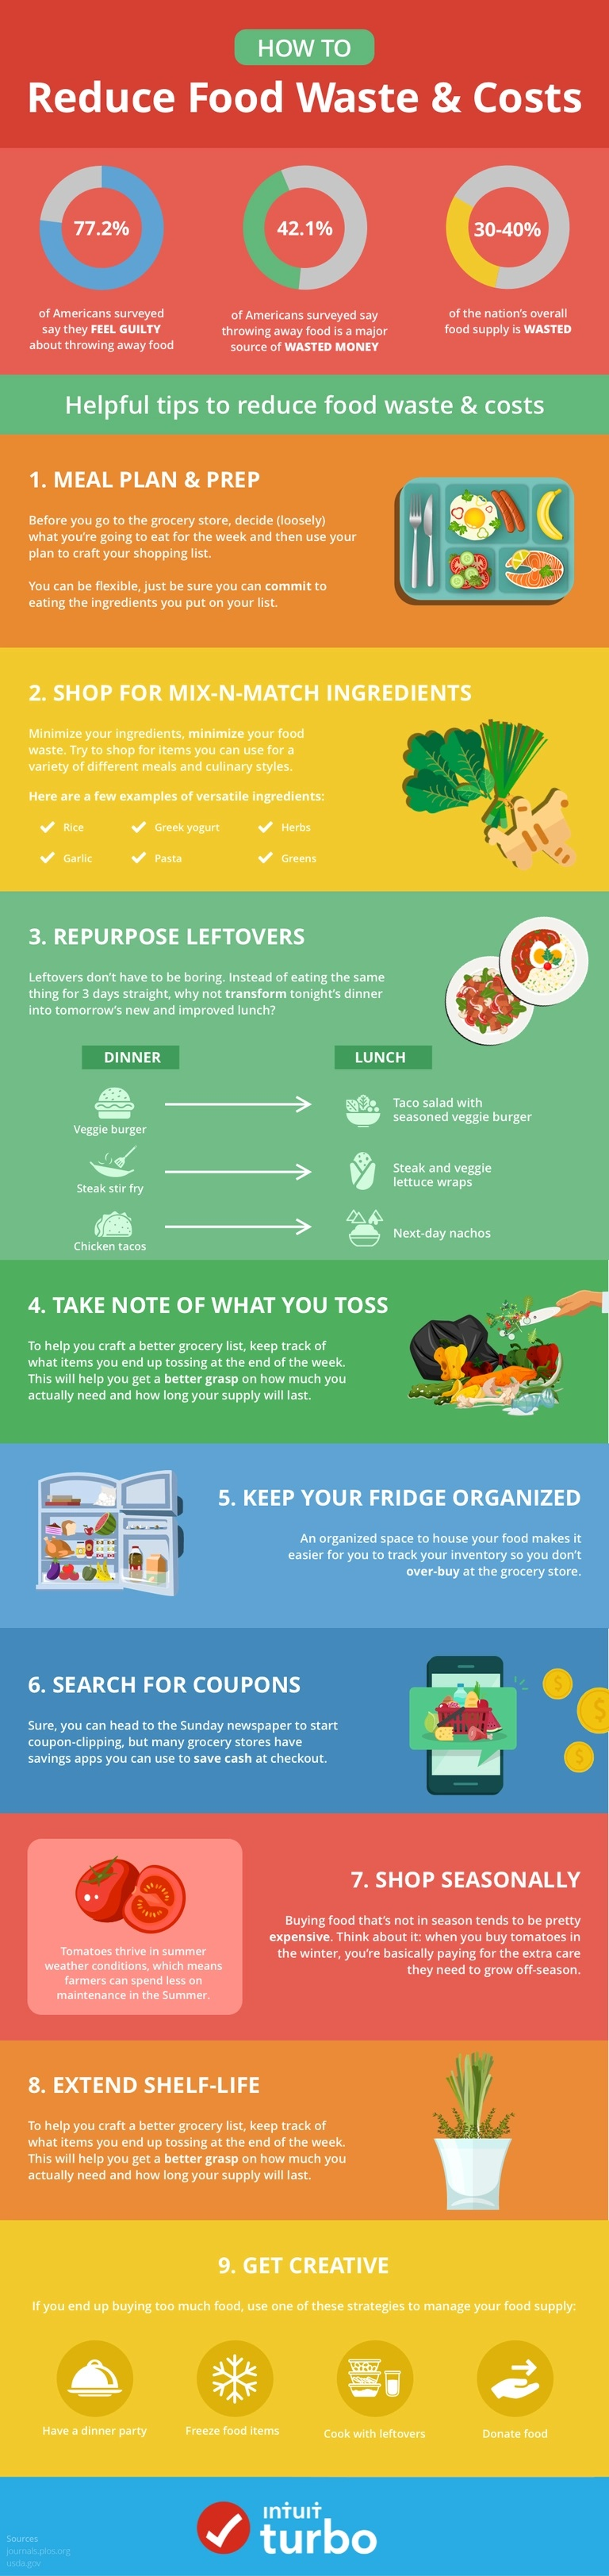 How to Reduce Food Waste & Food Costs #infographic